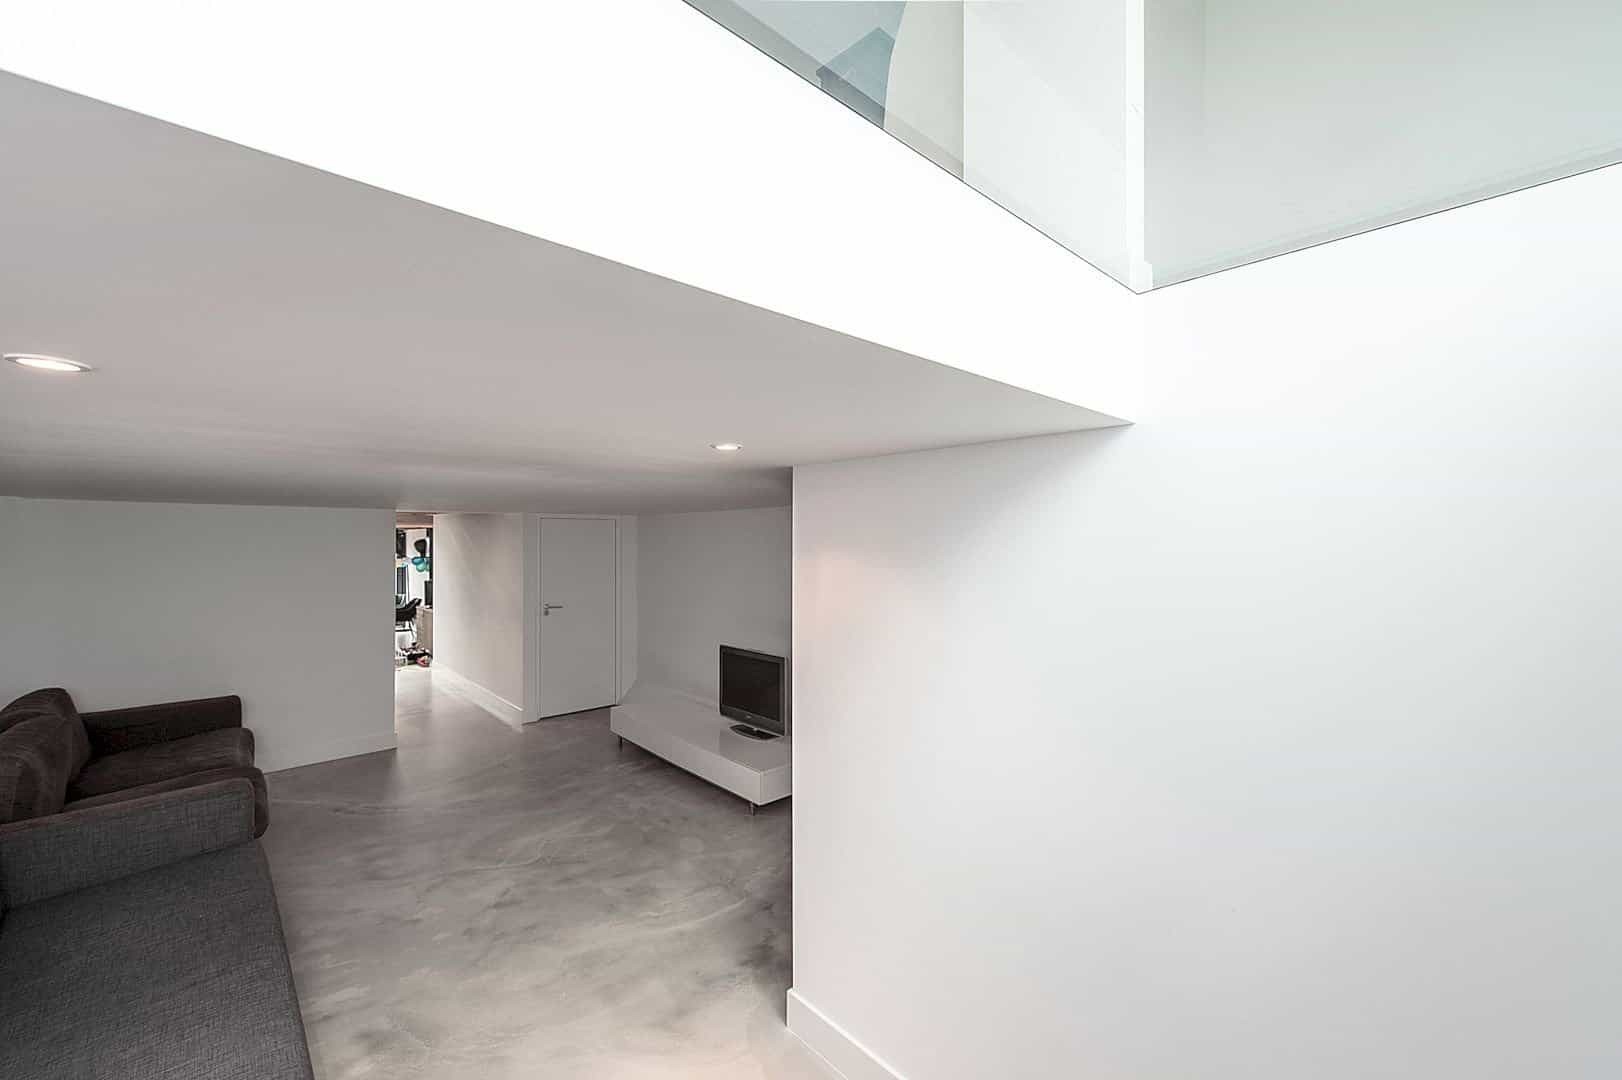 The Renovation And Extension Of A Row House In Overveen 4